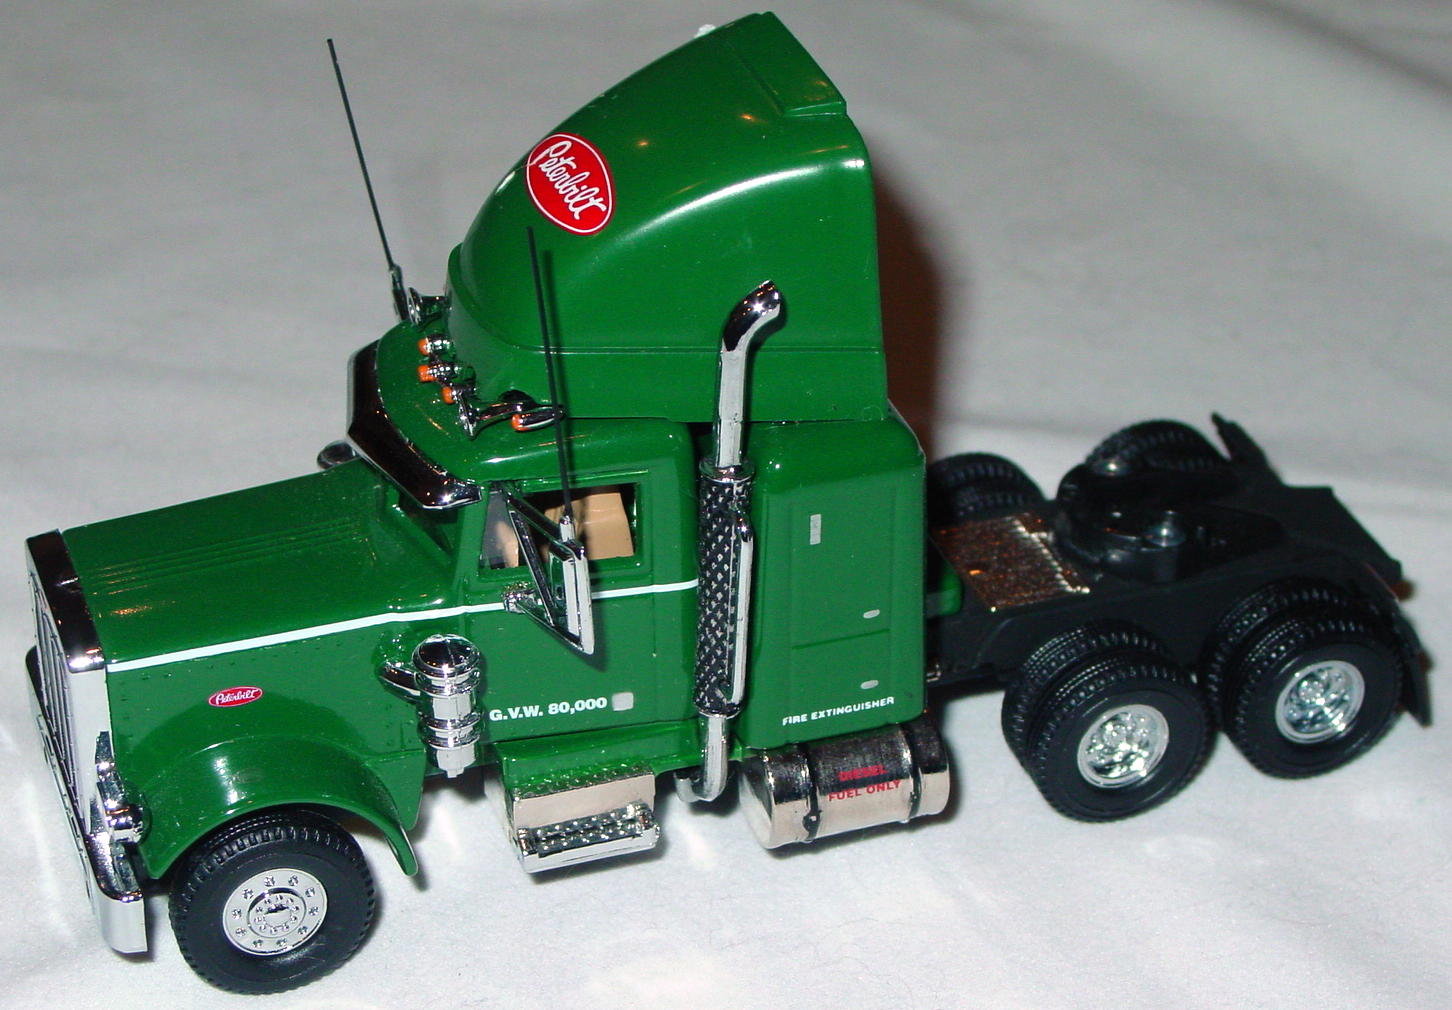 Collectibles Ks193am Peterbilt 359 Cabover Green Tractor Only